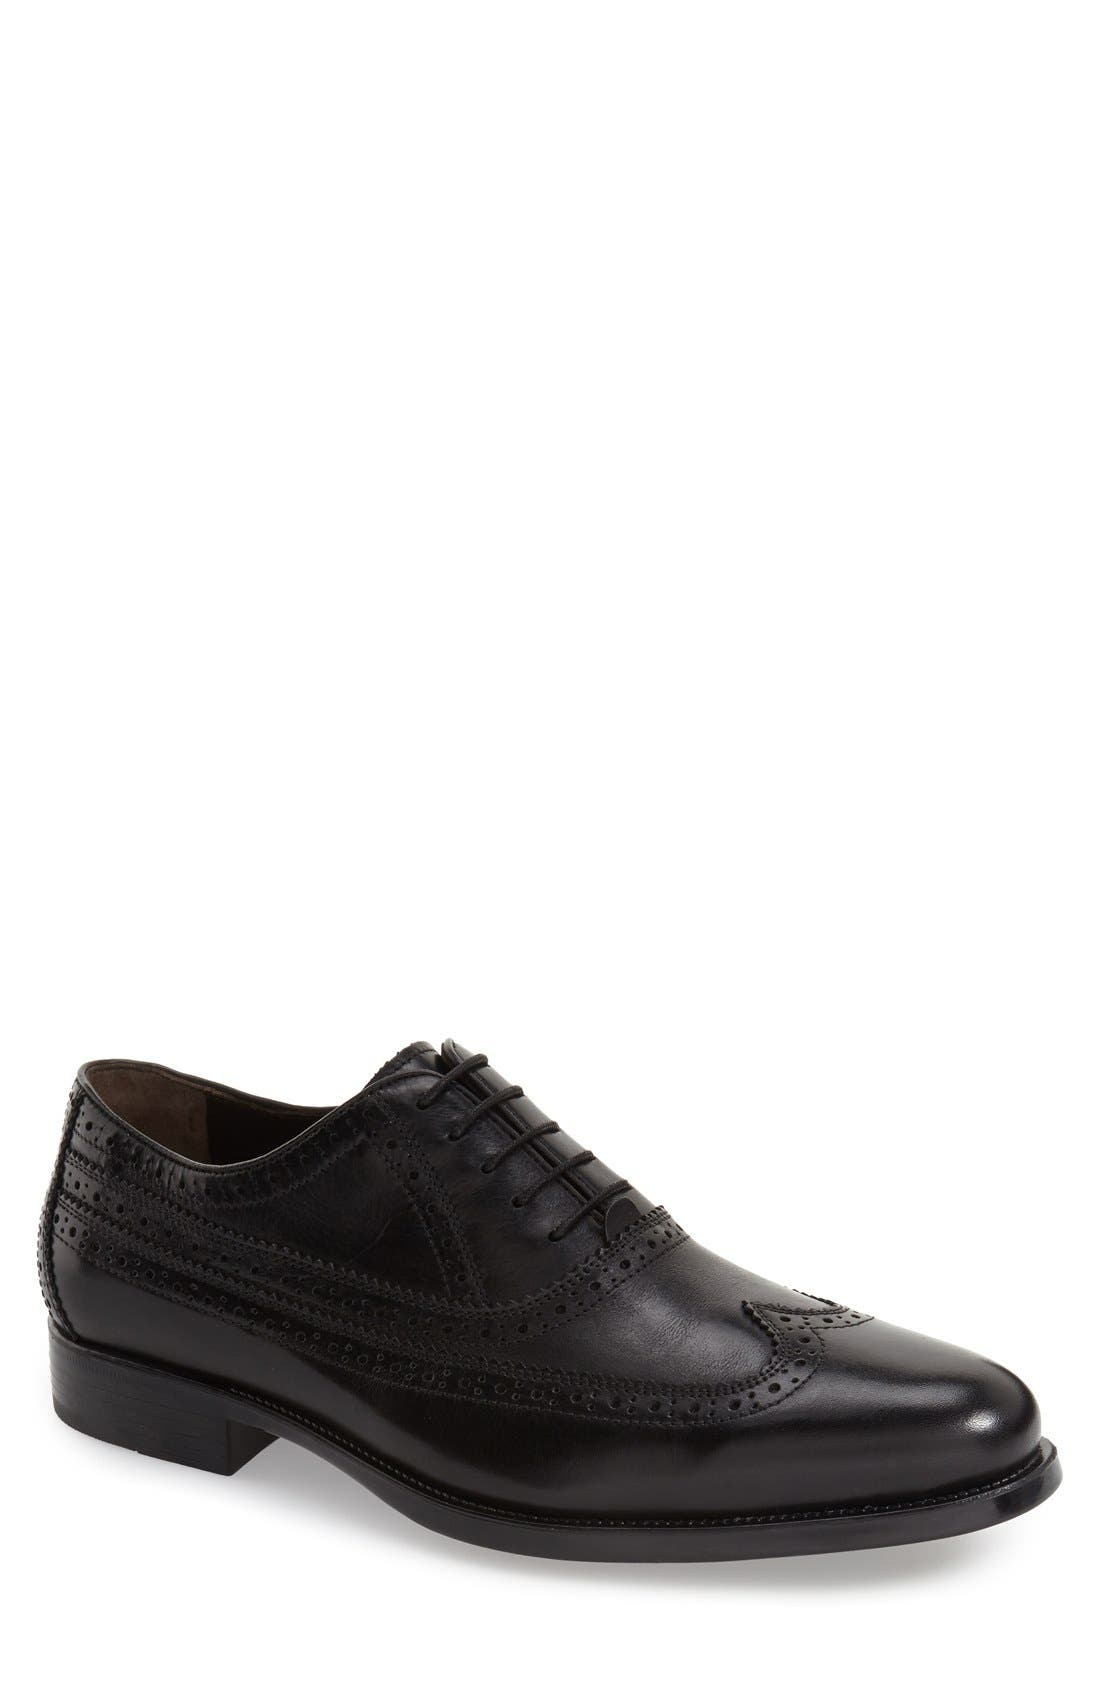 Main Image - Johnston & Murphy 'Duvall' Wingtip (Men)